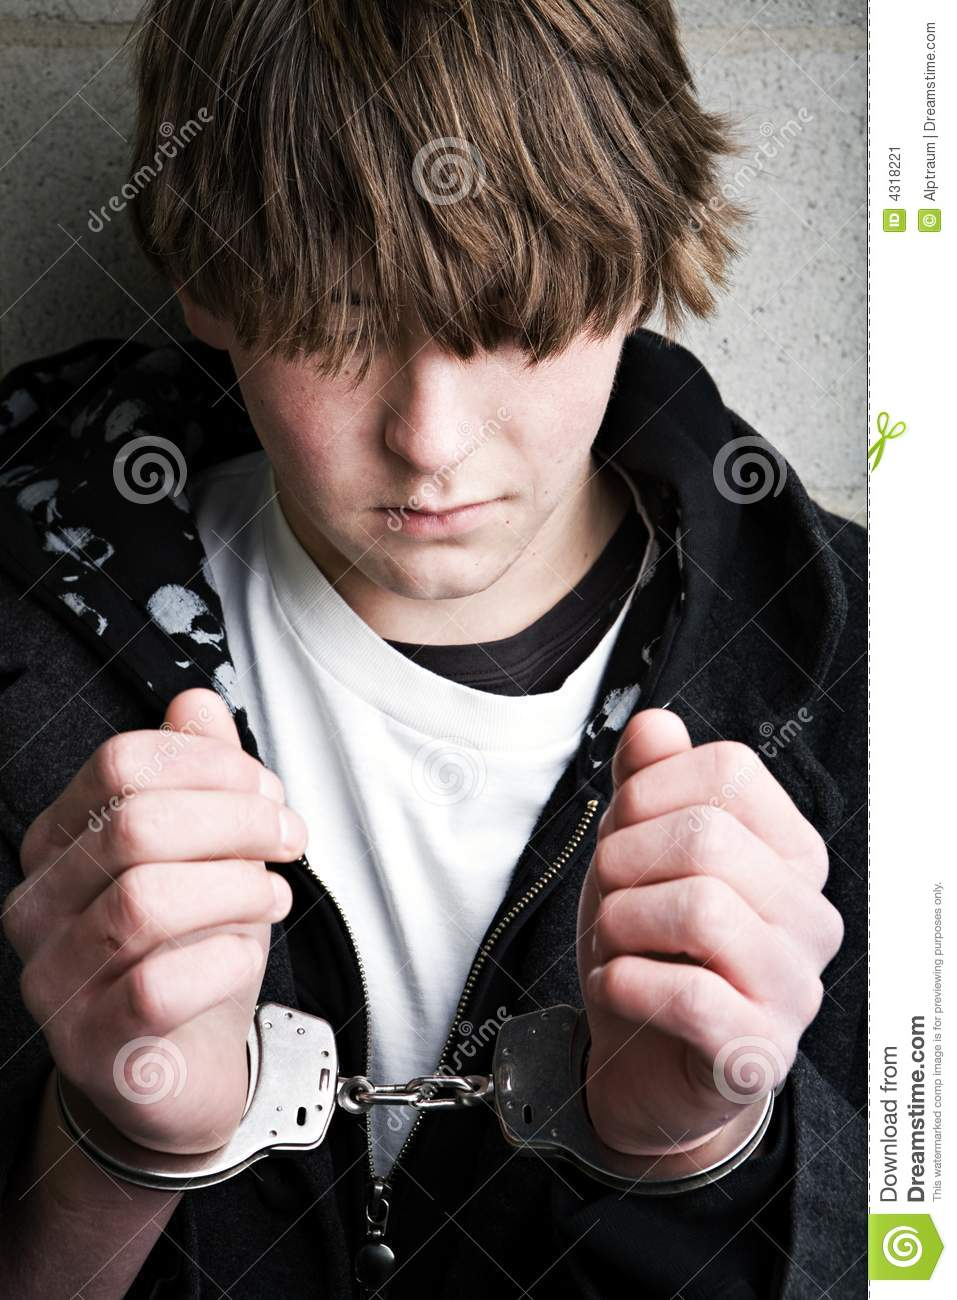 teenagers crime Almost one in three american teenagers and young adults have been arrested by the age of 23 for anything from drug use to violent crime experts believe the increase.